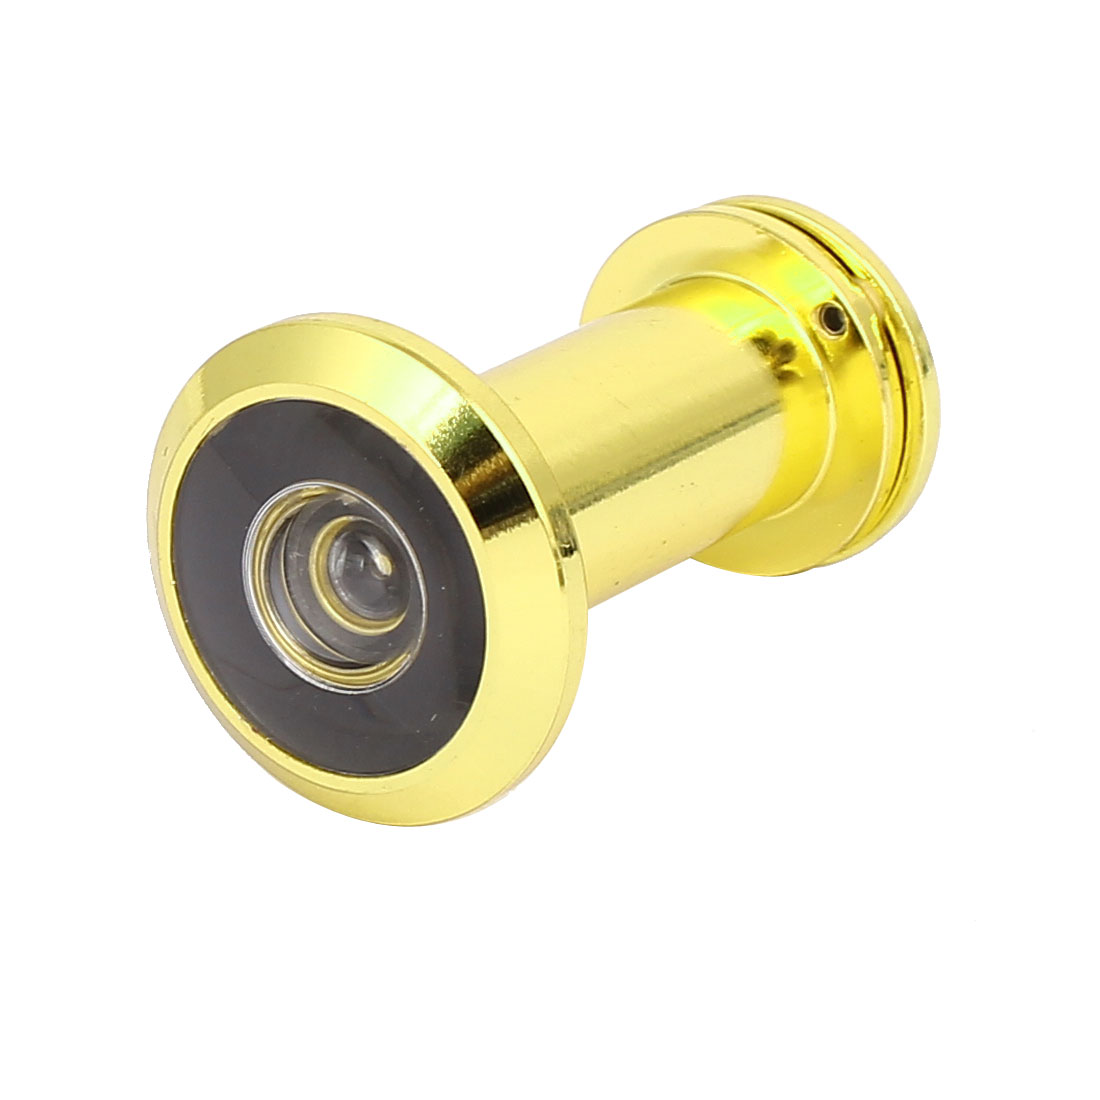 16mm Diameter 180 Degree Wide Angle Door Viewer Peephole Gold Tone